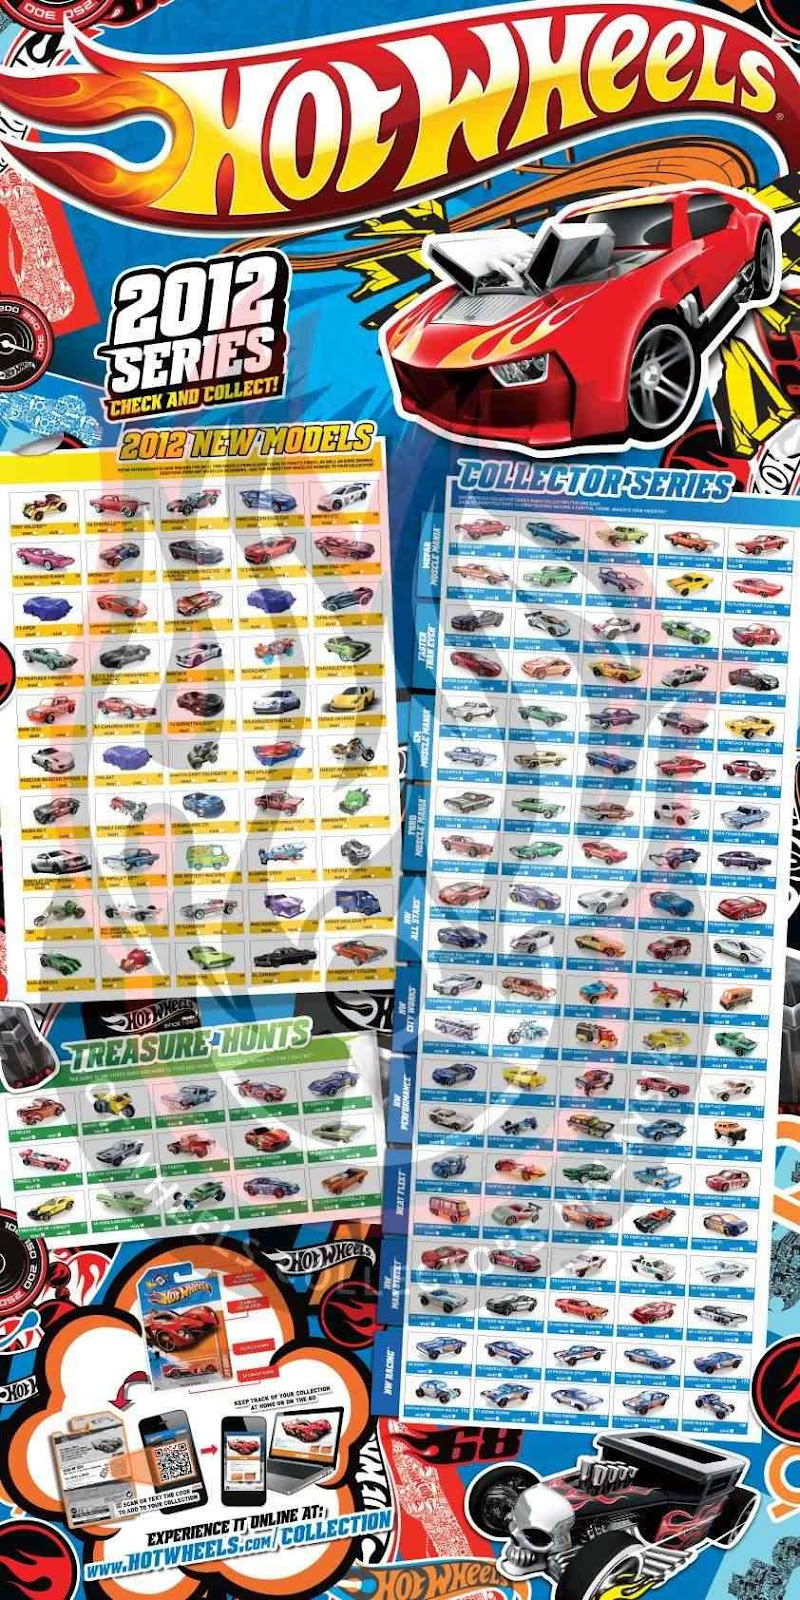 the 2012 hot wheels posters are out more cars to collects pic from hwcm thanks guys will do a more detail poster to show cheers for now - Hot Wheels Cars 2012